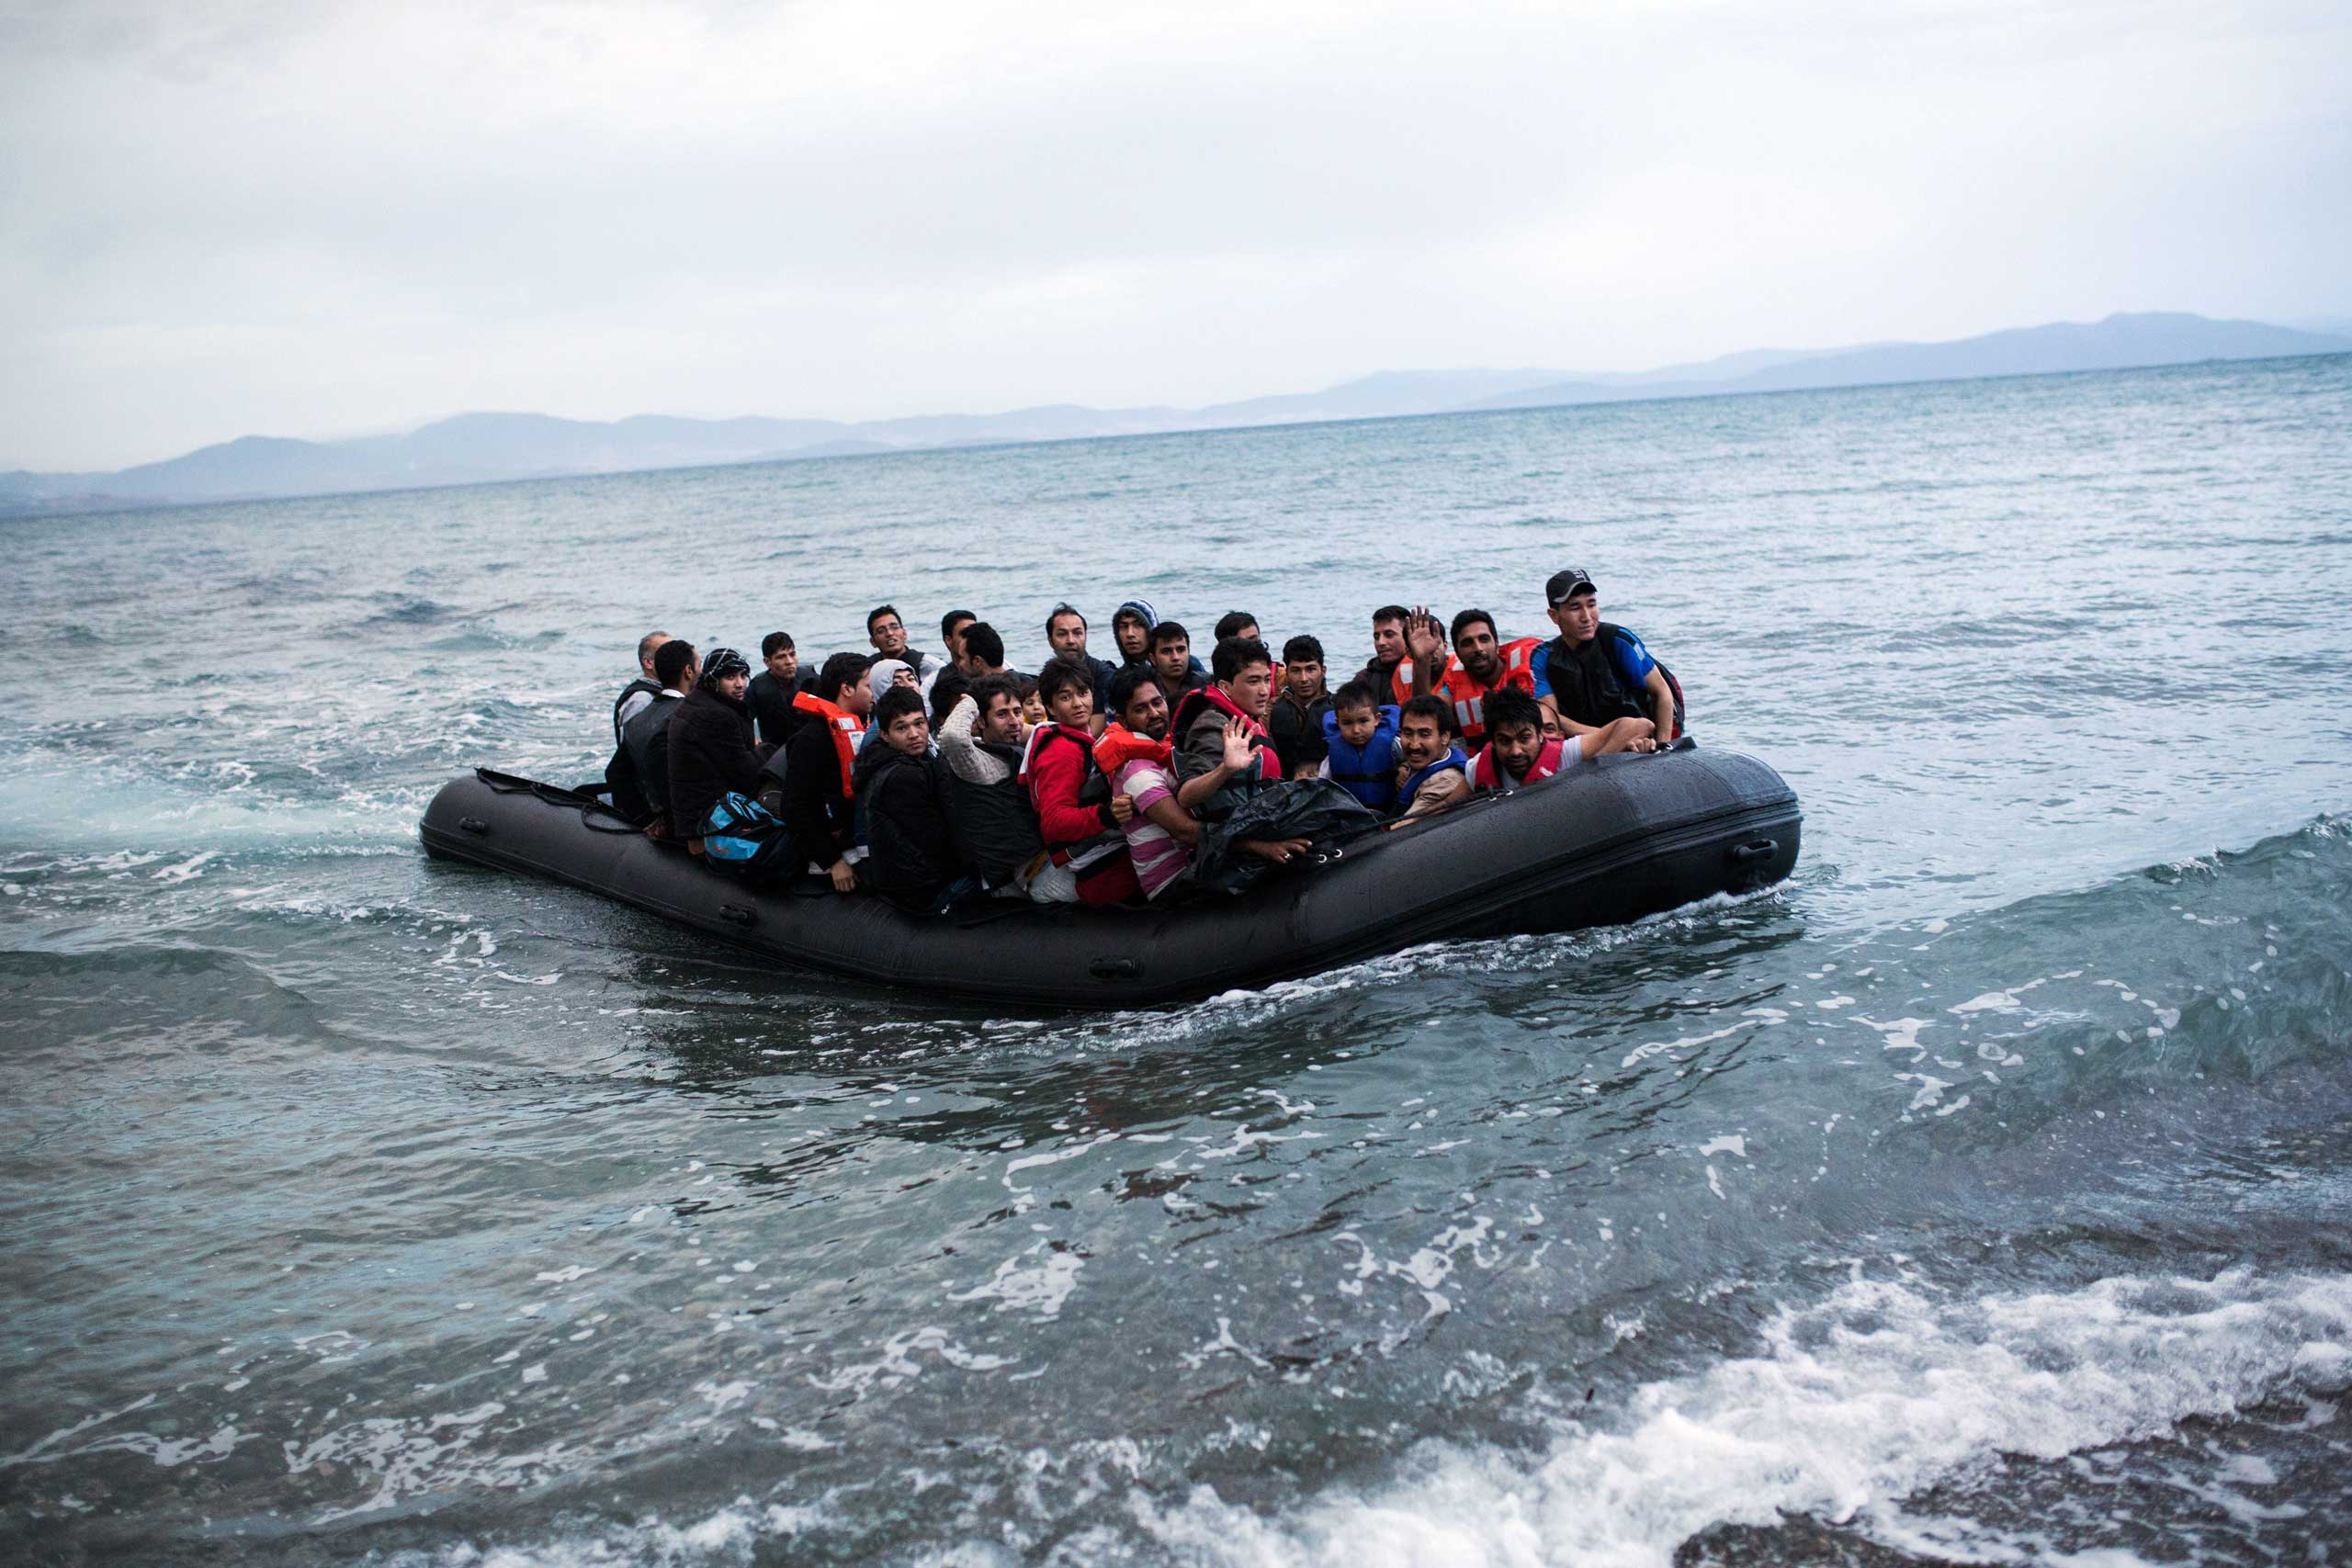 A dinghy overcrowded with Afghan migrants arrives on a beach on the Greek island of Kos, after crossing a part of the Aegean Sea between Turkey and Greece, May 27, 2015.